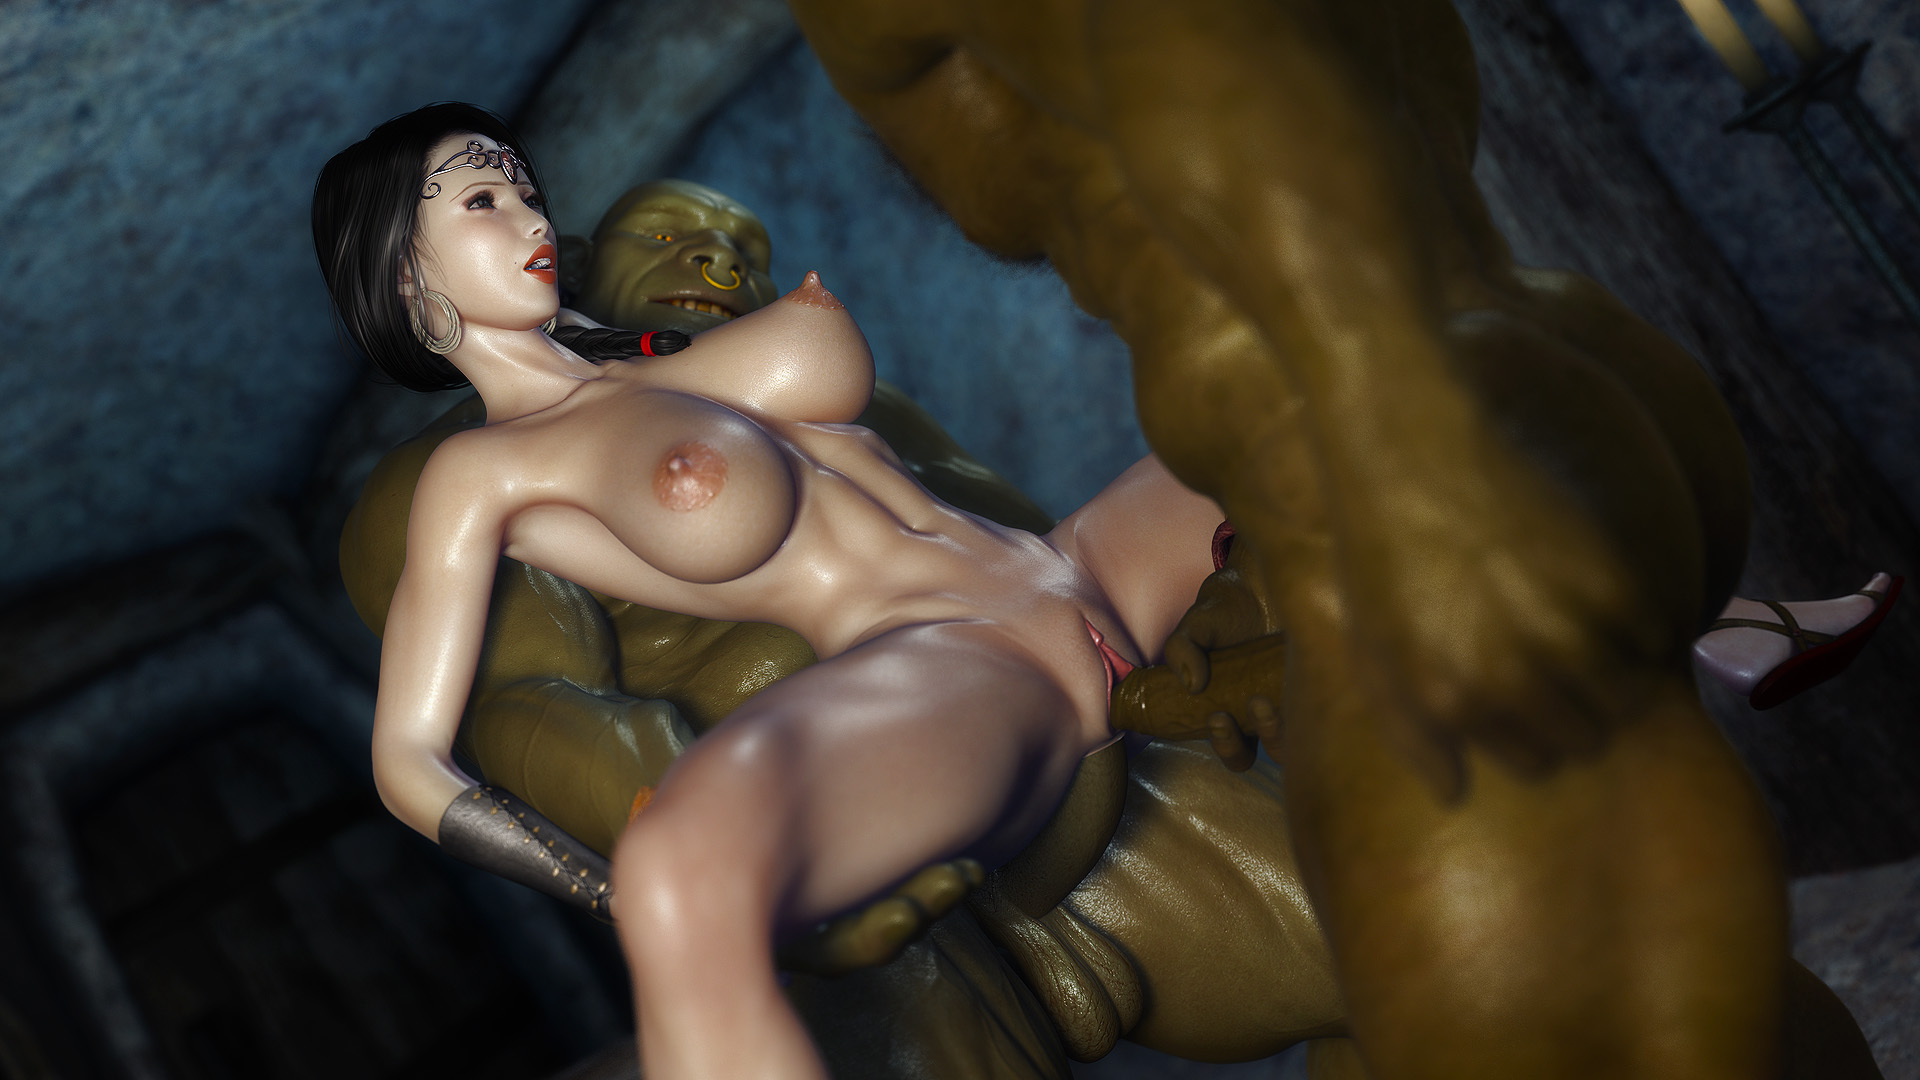 Two orc fuck princess 3d fucks gallery